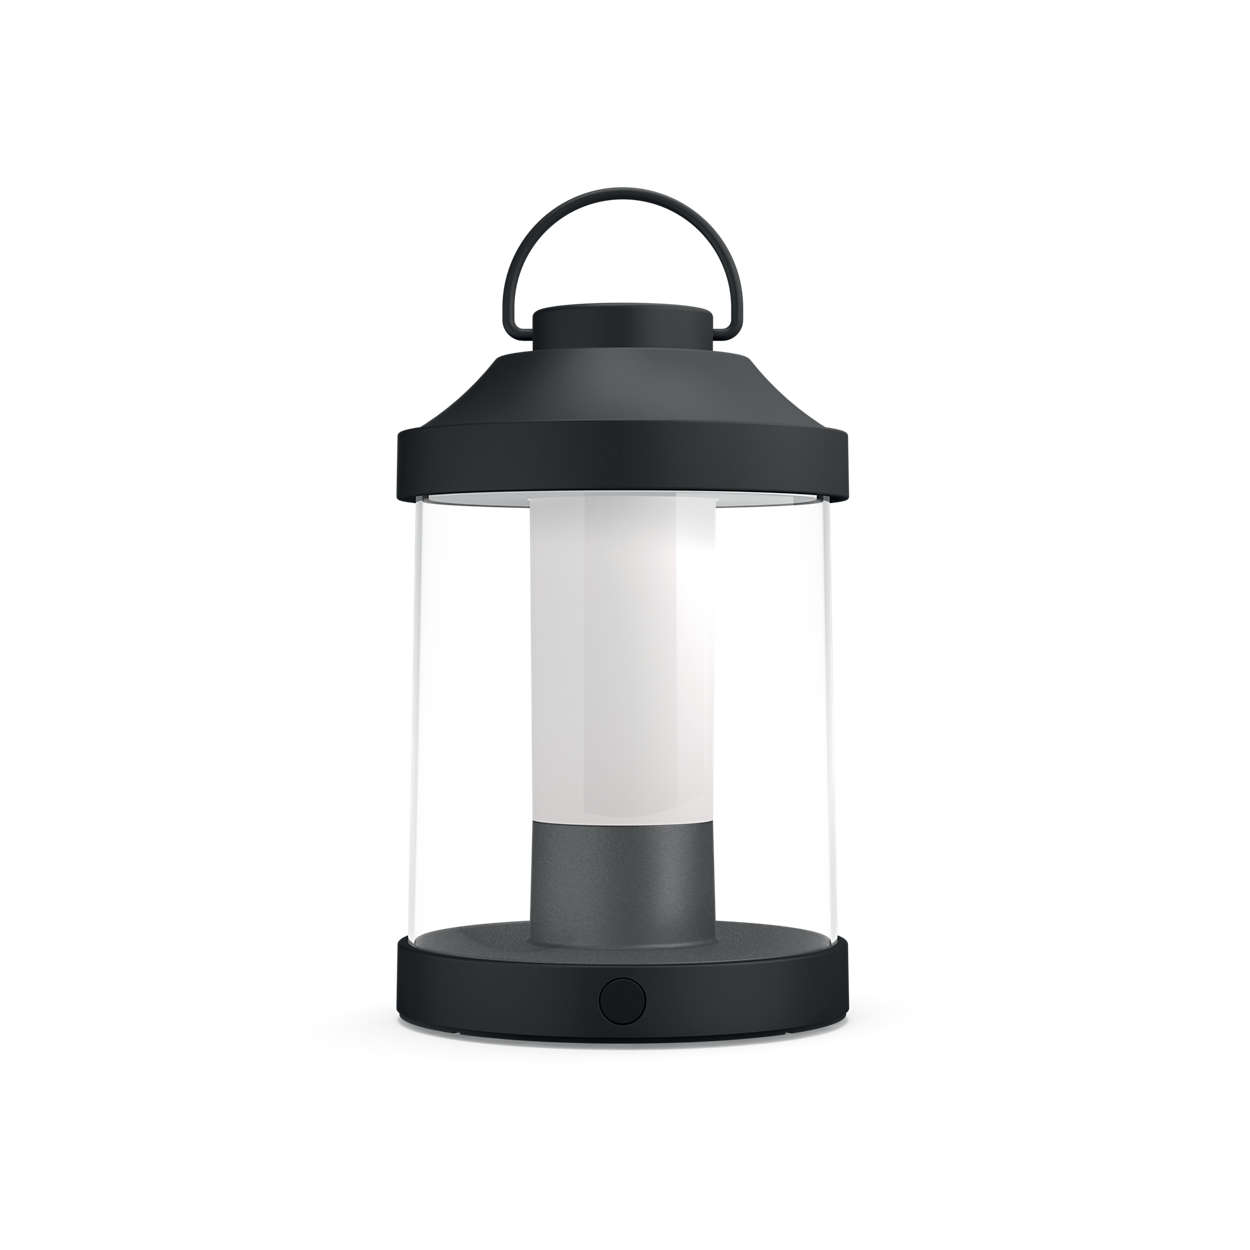 Enjoy long evenings outside with a portable light